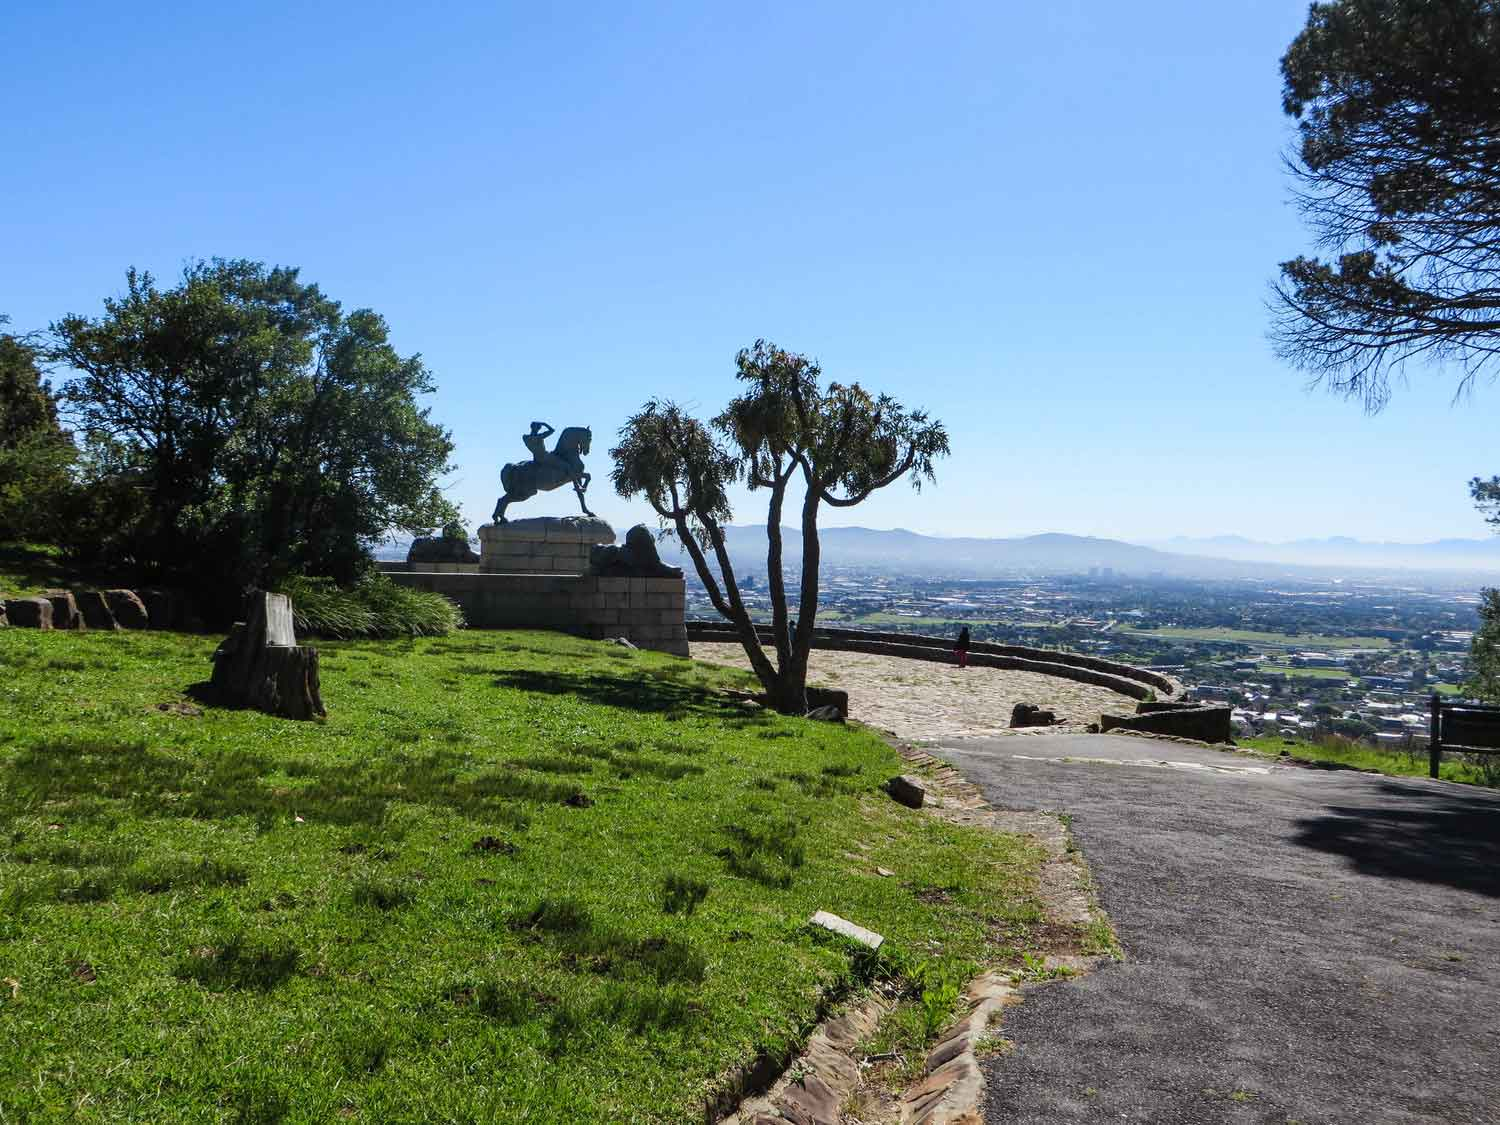 Rhodes Memorial Park South Africa